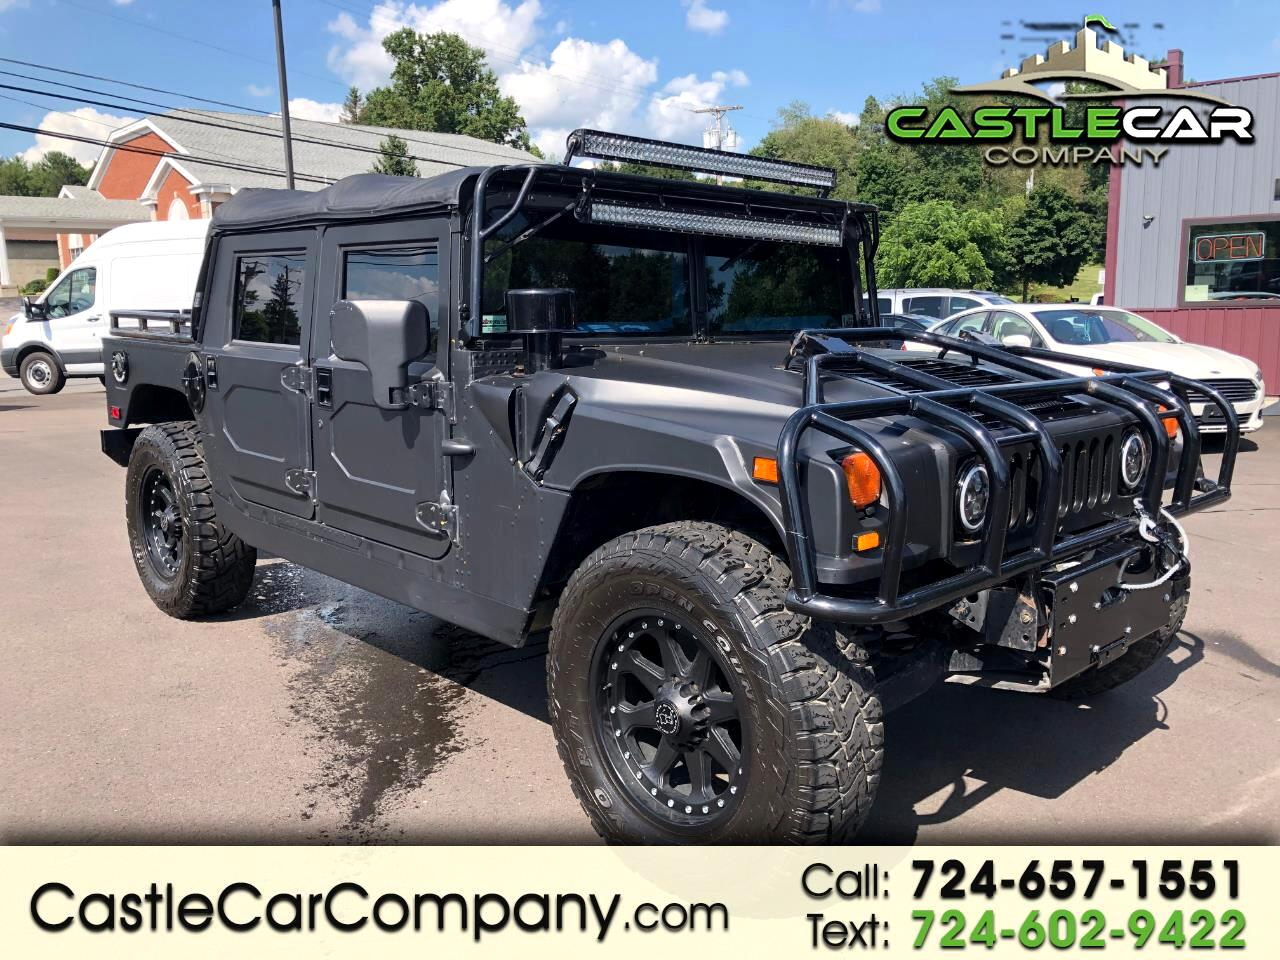 2002 HUMMER H1 4-Passenger Open Top Hard Doors